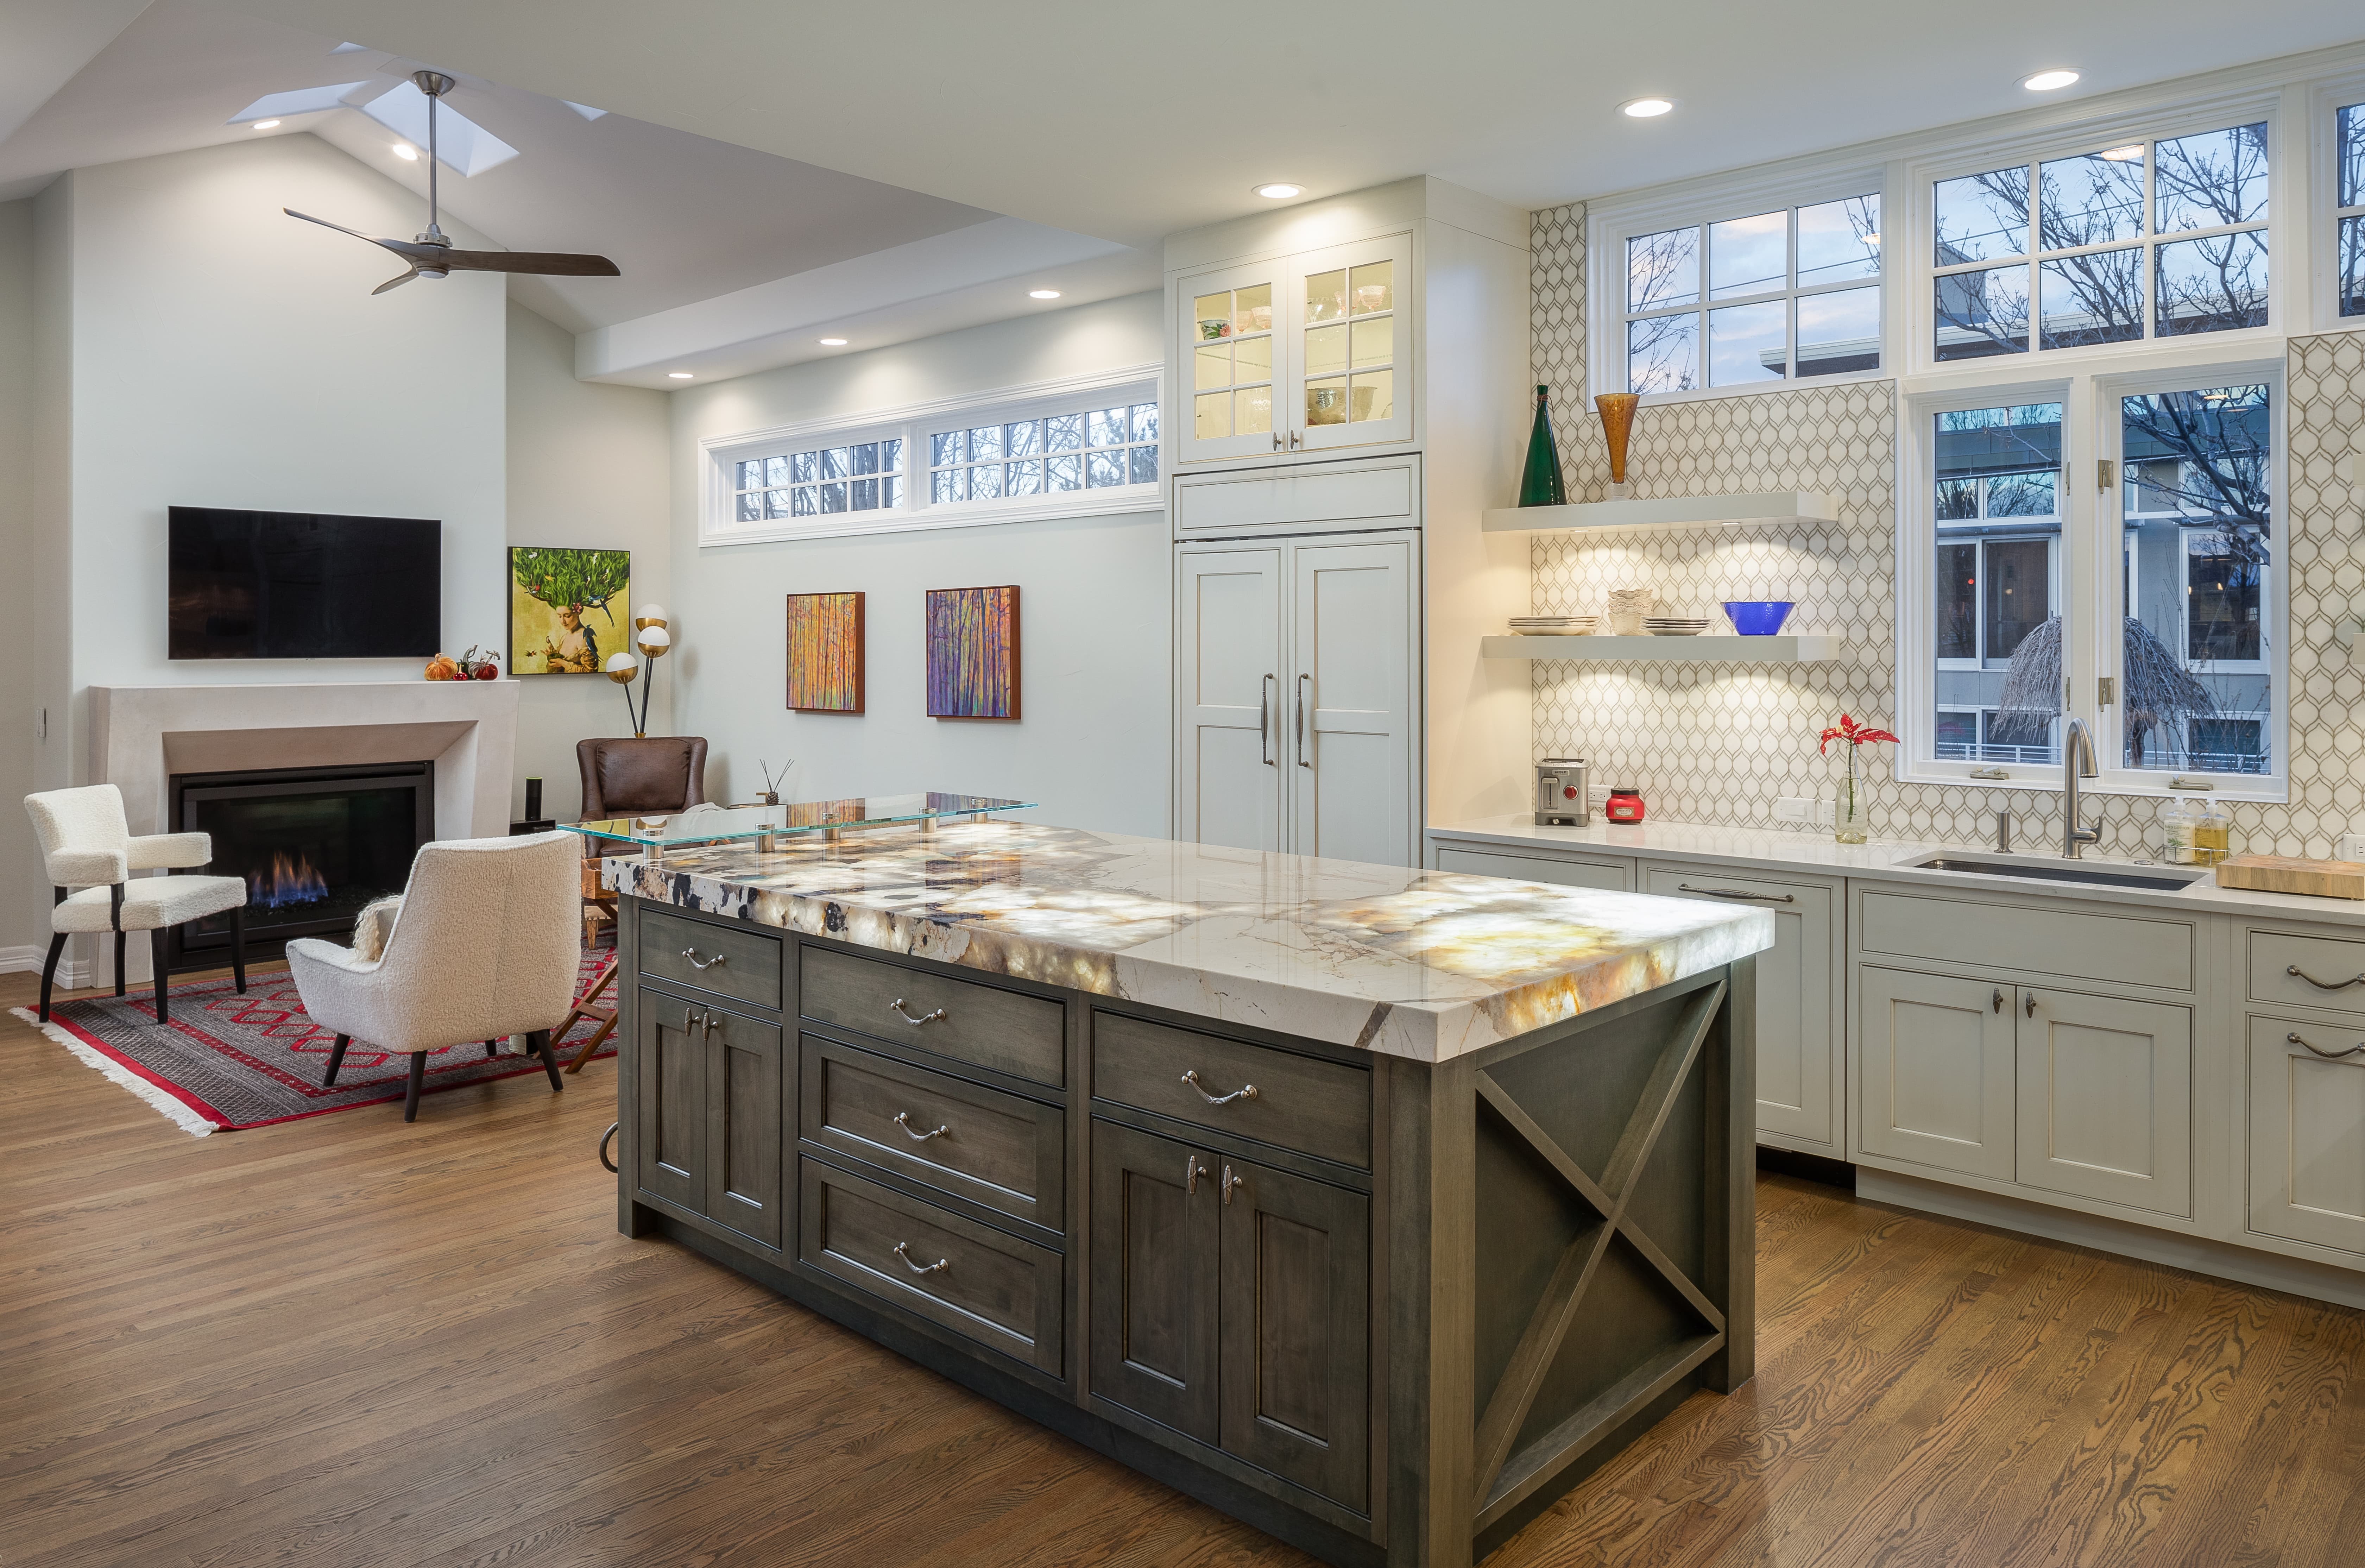 YK Stone Center fabrication shop denver, patagonia kitchen island LED island